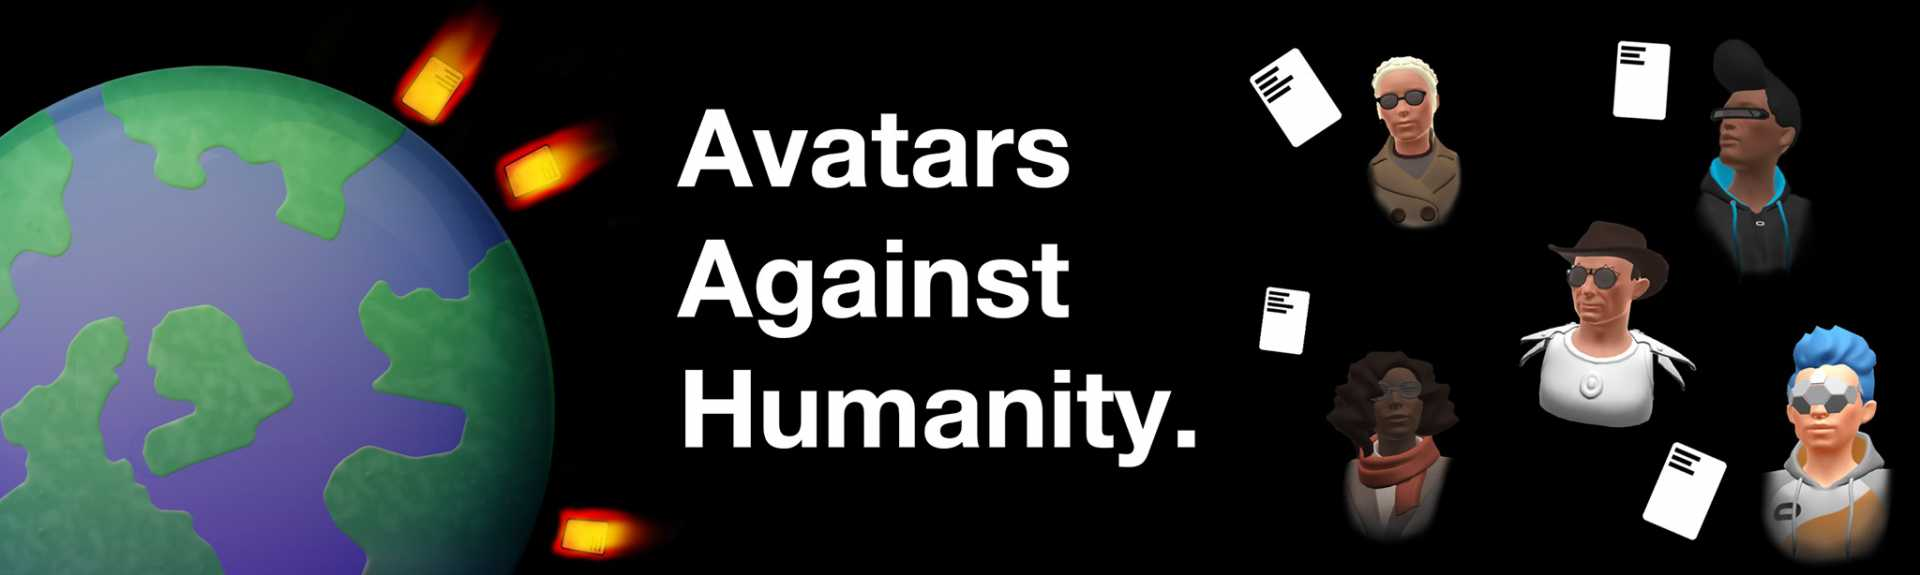 Avatars Against Humanity